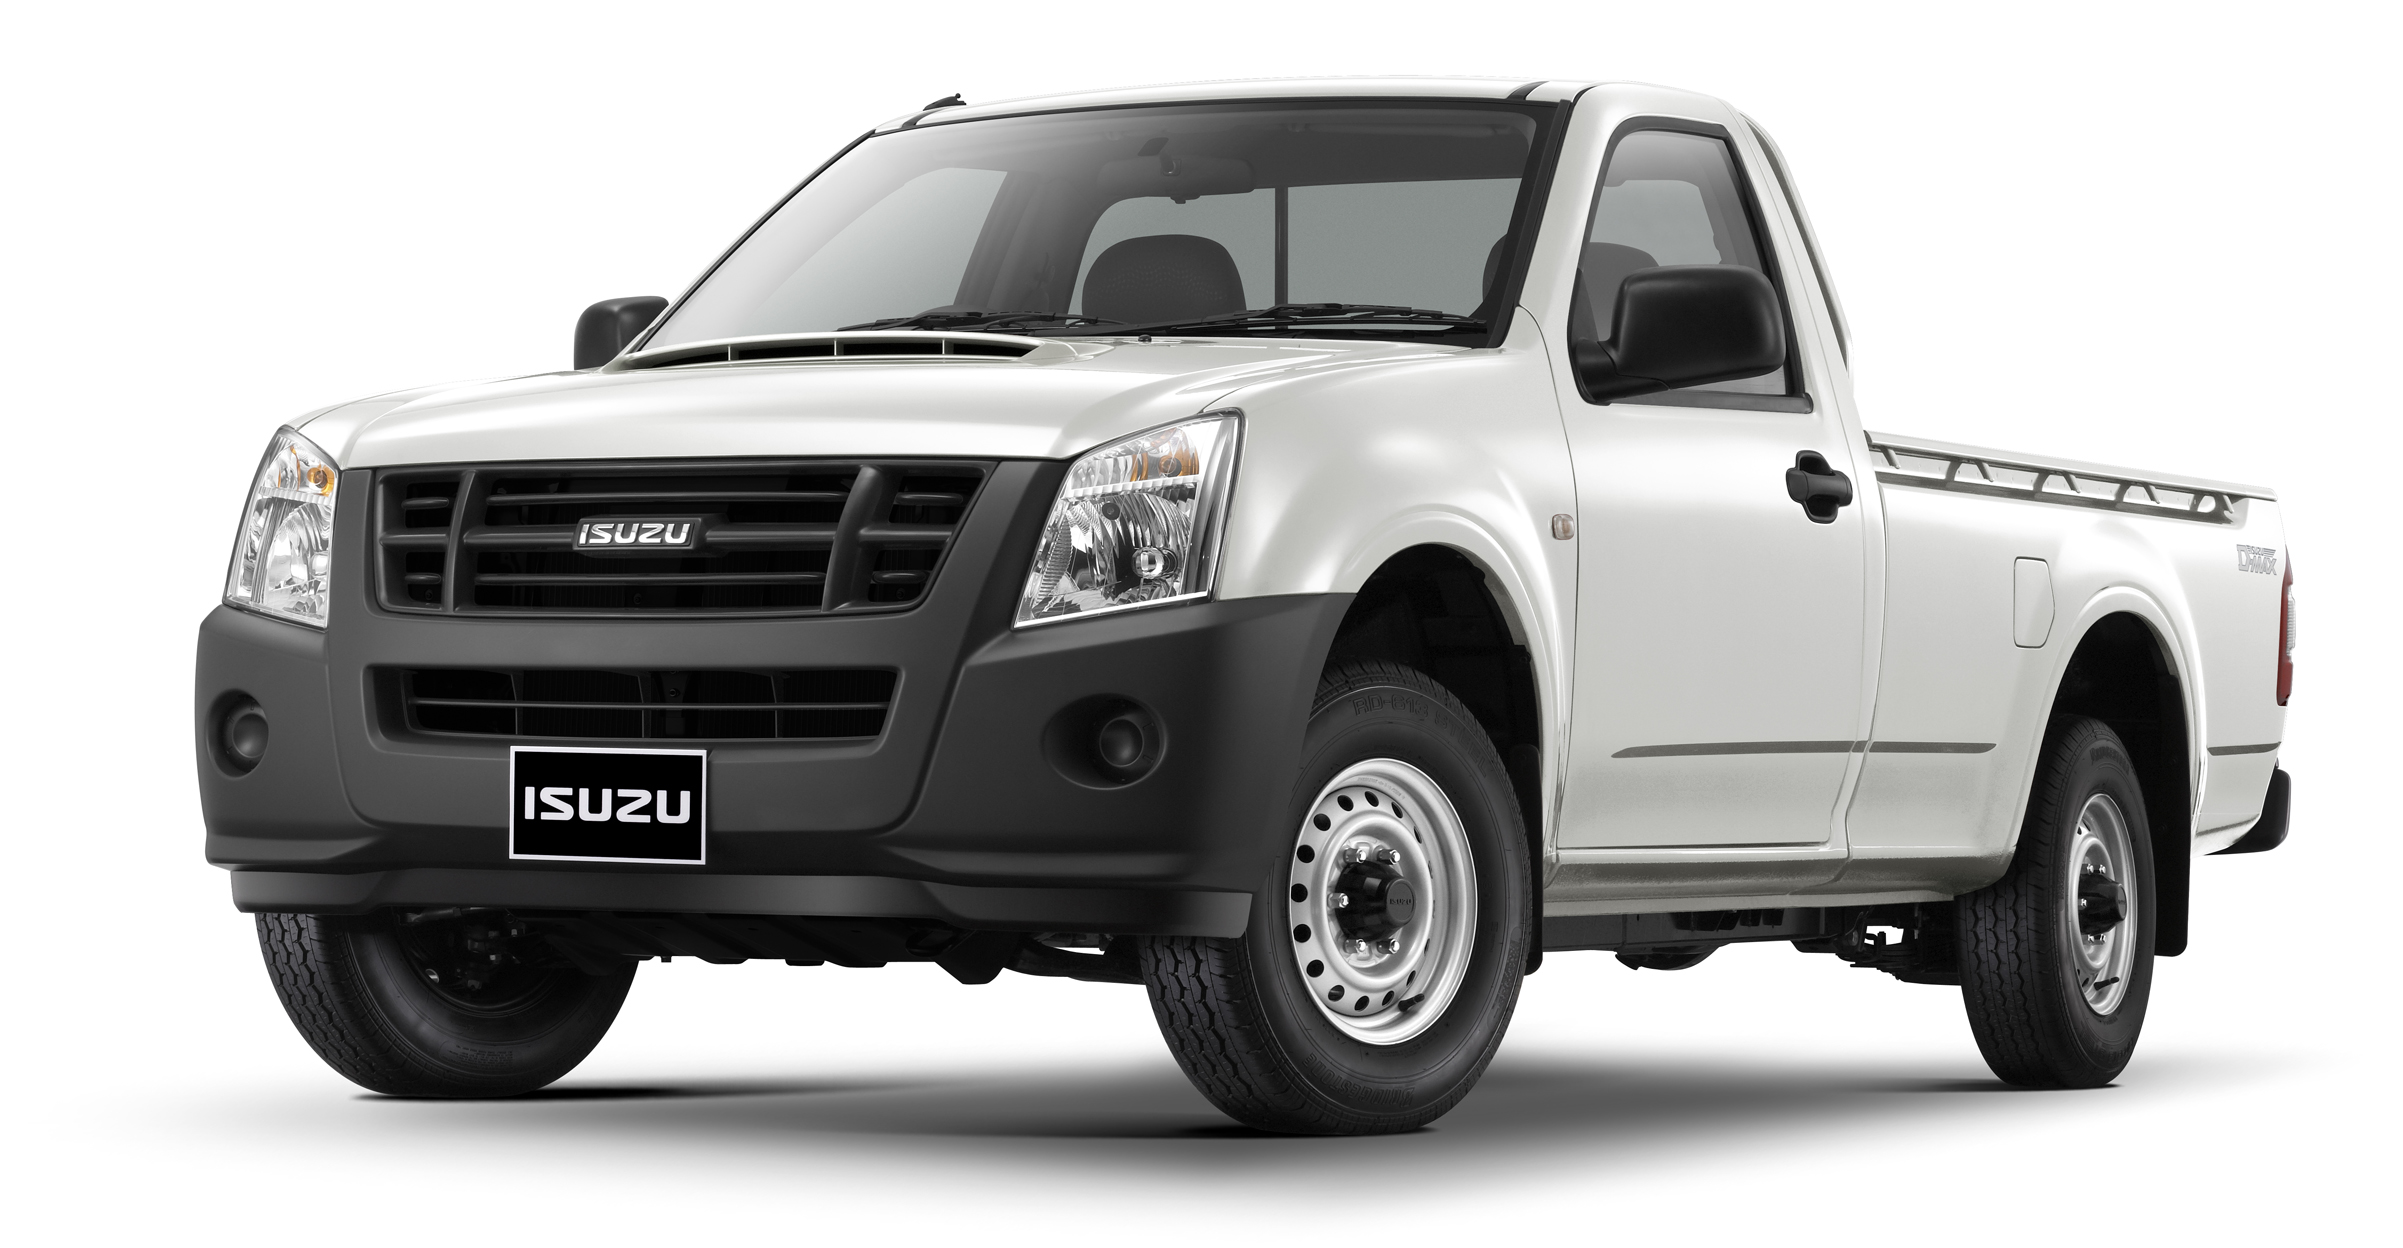 ISUZU MOTORS INDIA FINALIZES AGREEMENT WITH HINDUSTAN MOTORS LIMITED (HML) - HML TO CONTRACT